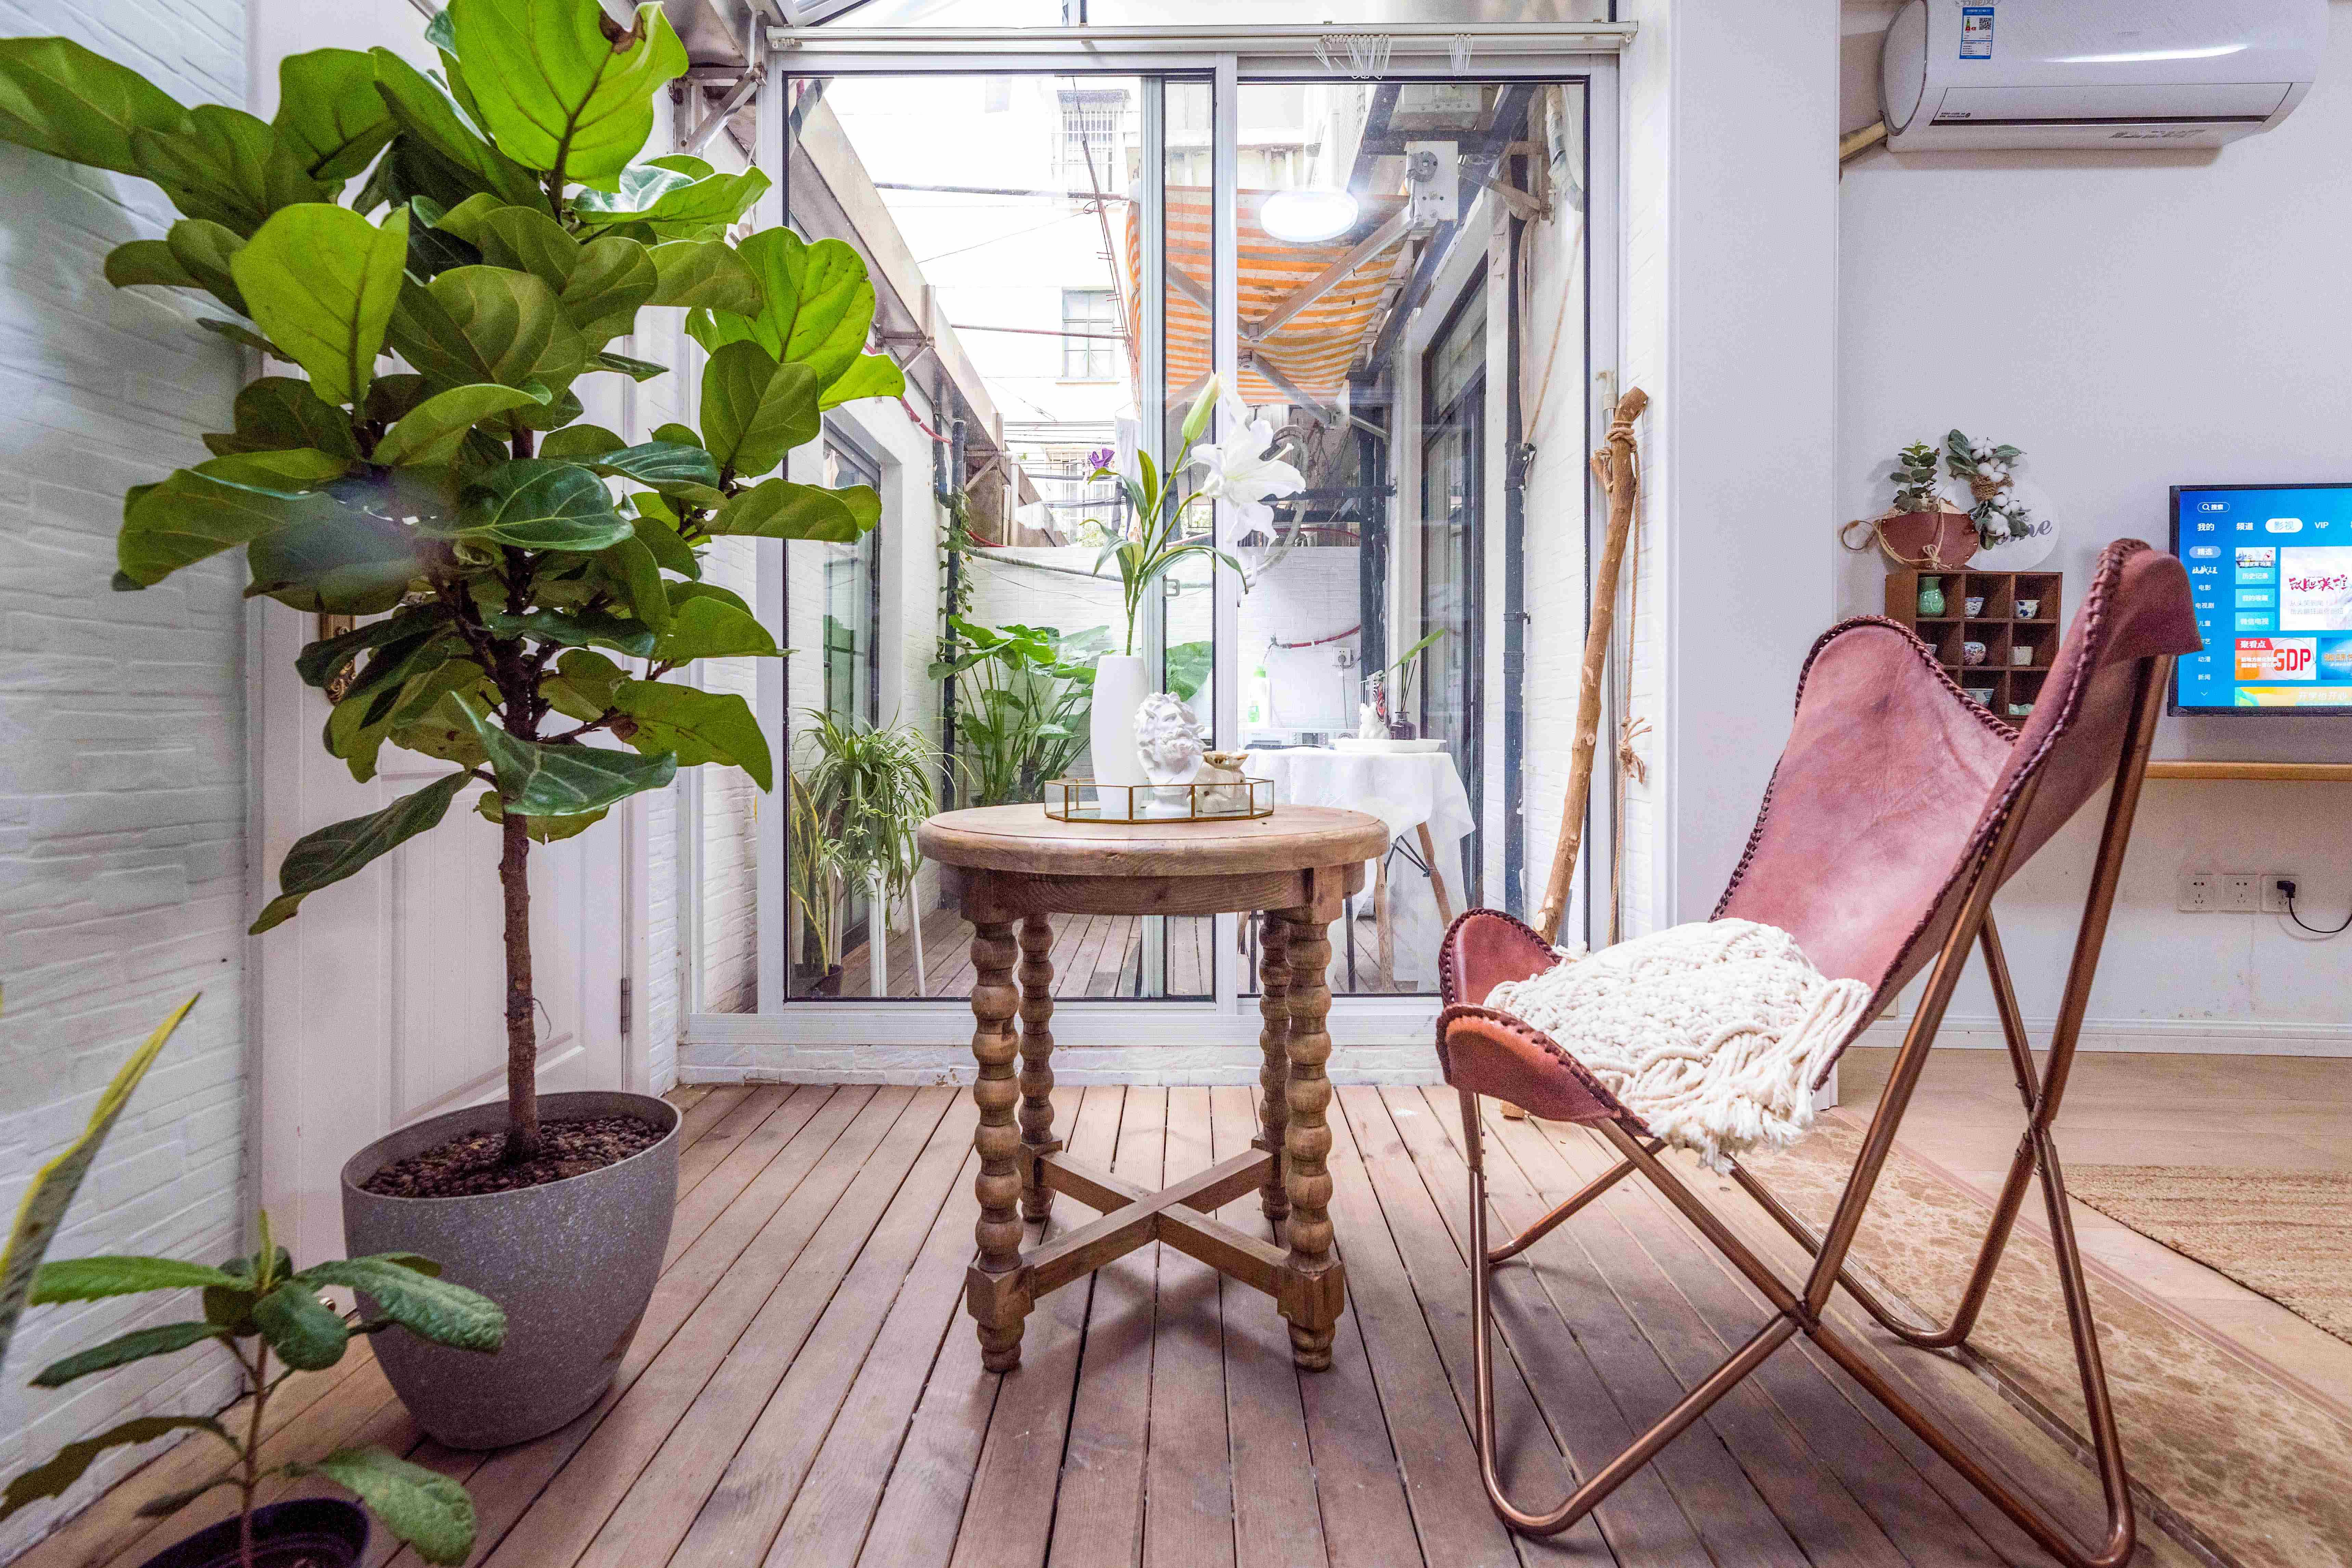 3br with Cute Yard At West jianguo road +Jiashan Rd line 9/12